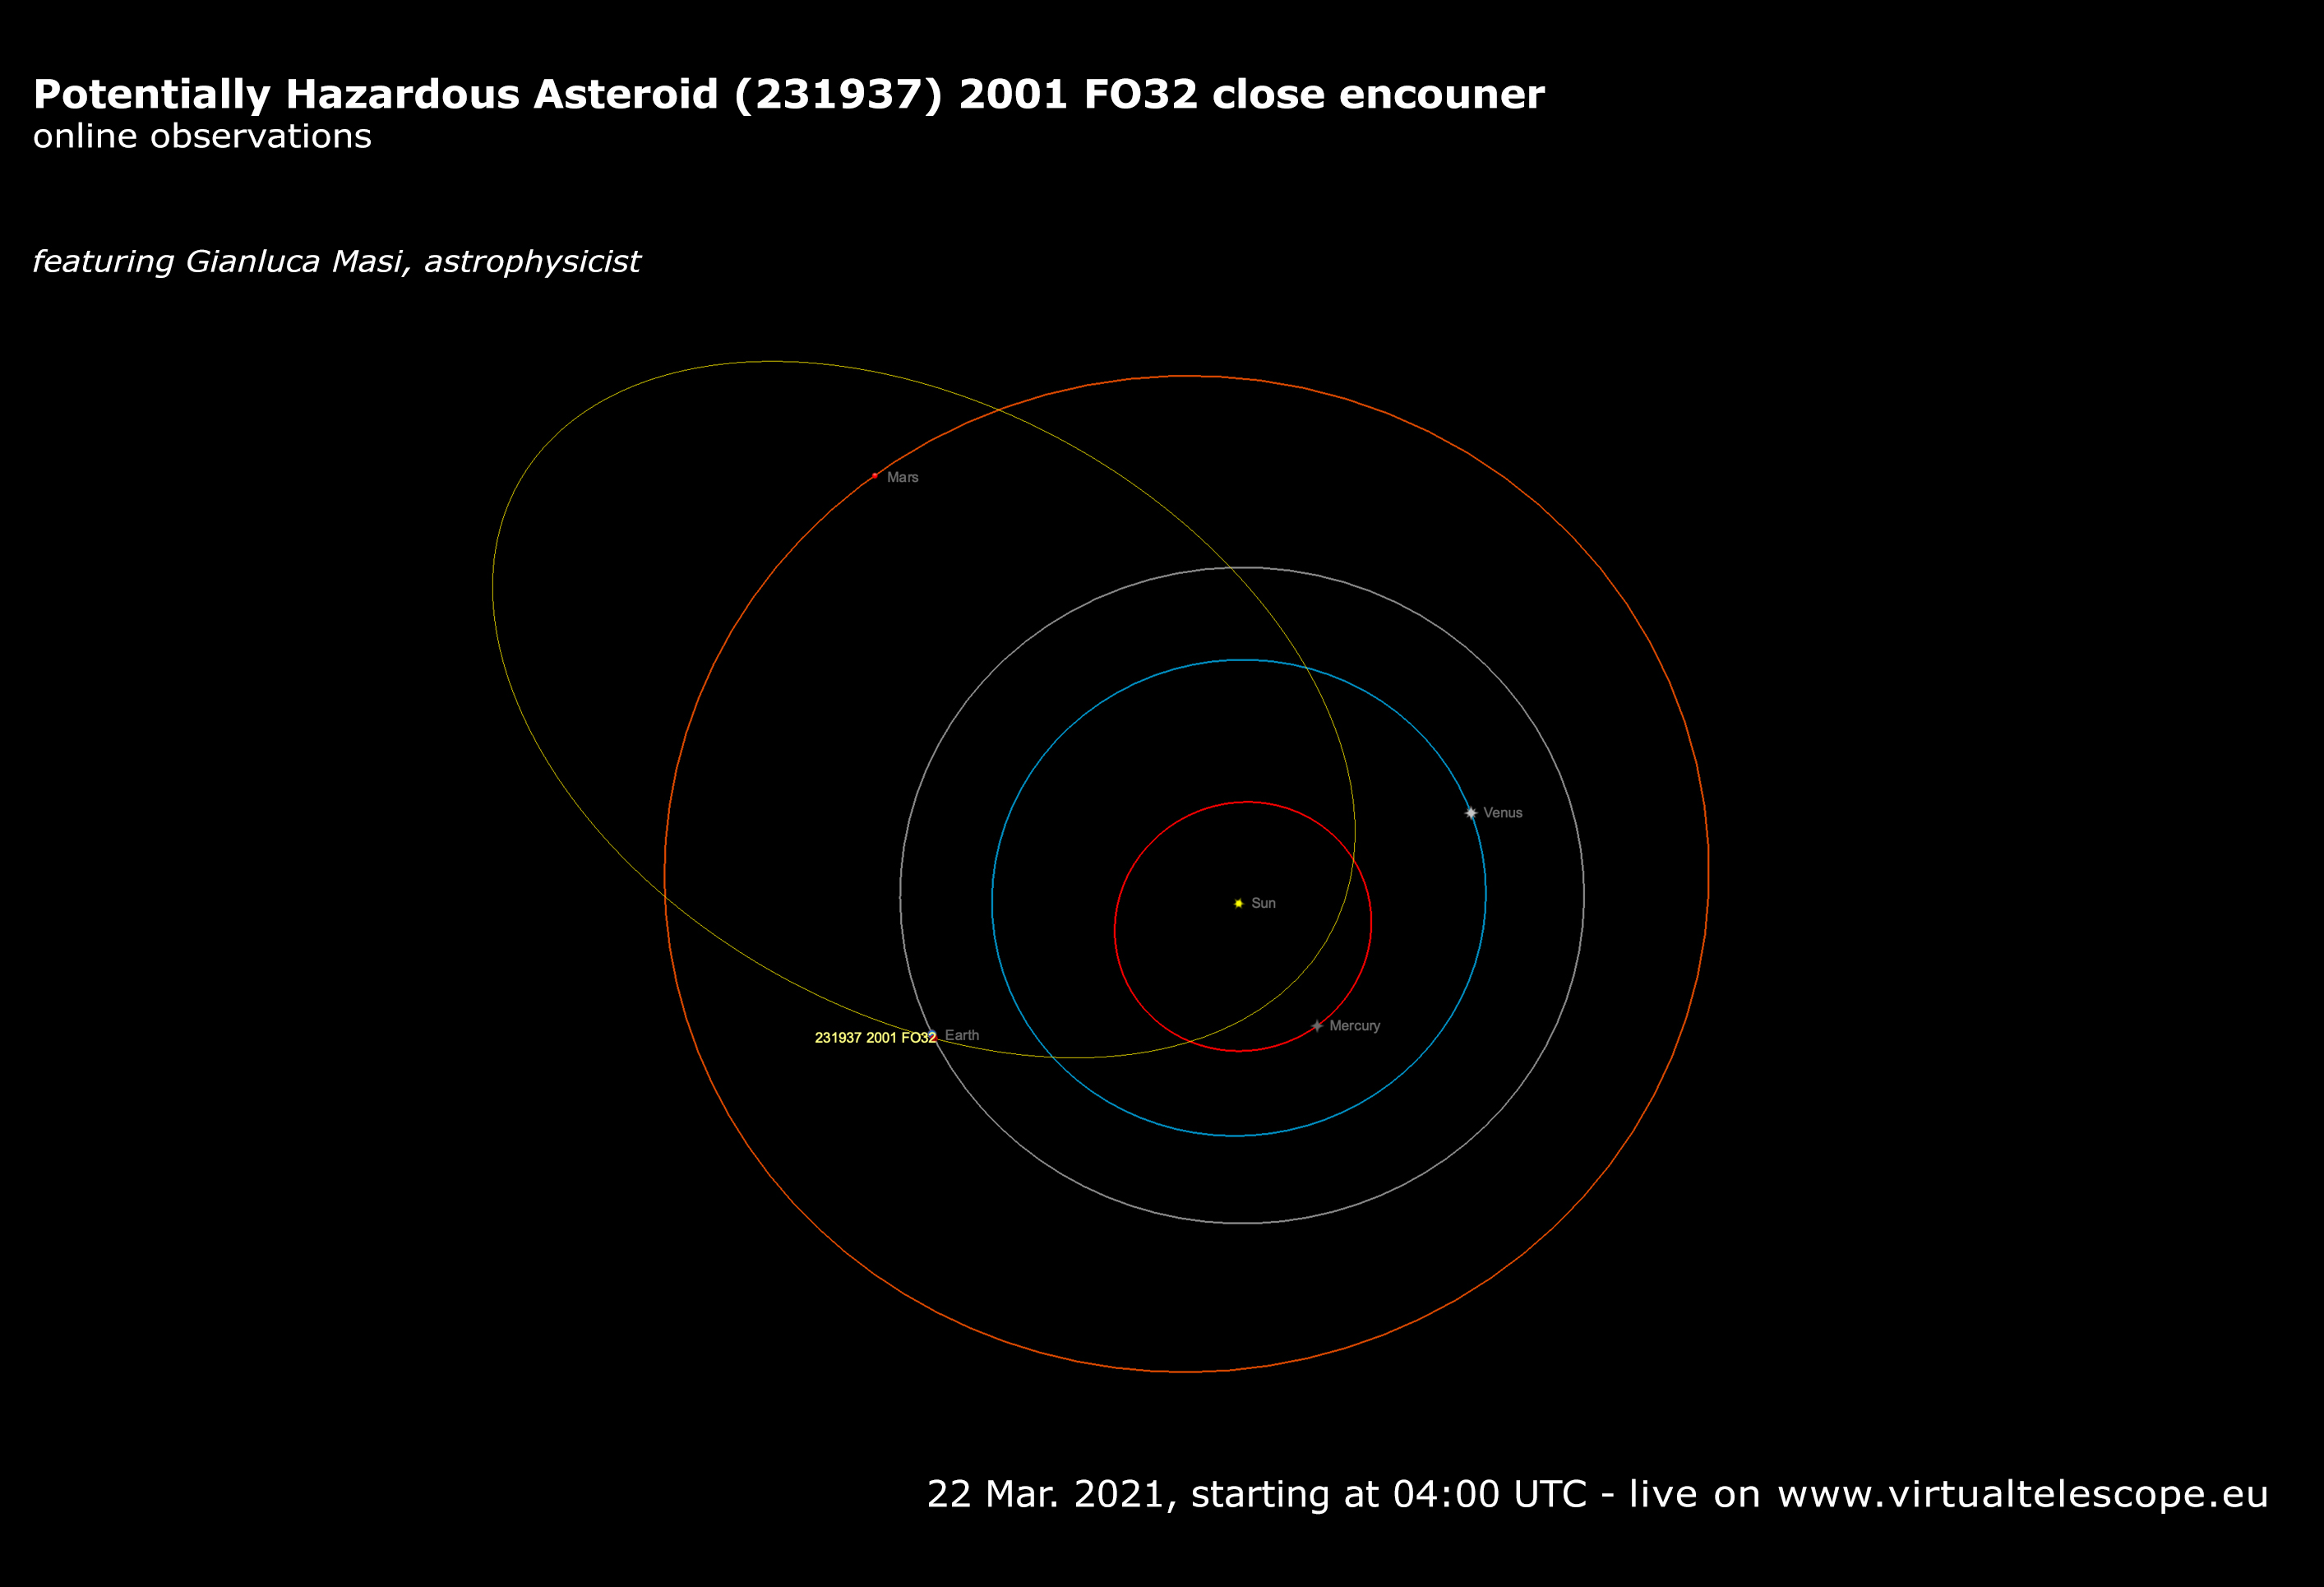 Potentially Hazardous Asteroid 231937 (2001 FO32): poster of the event.